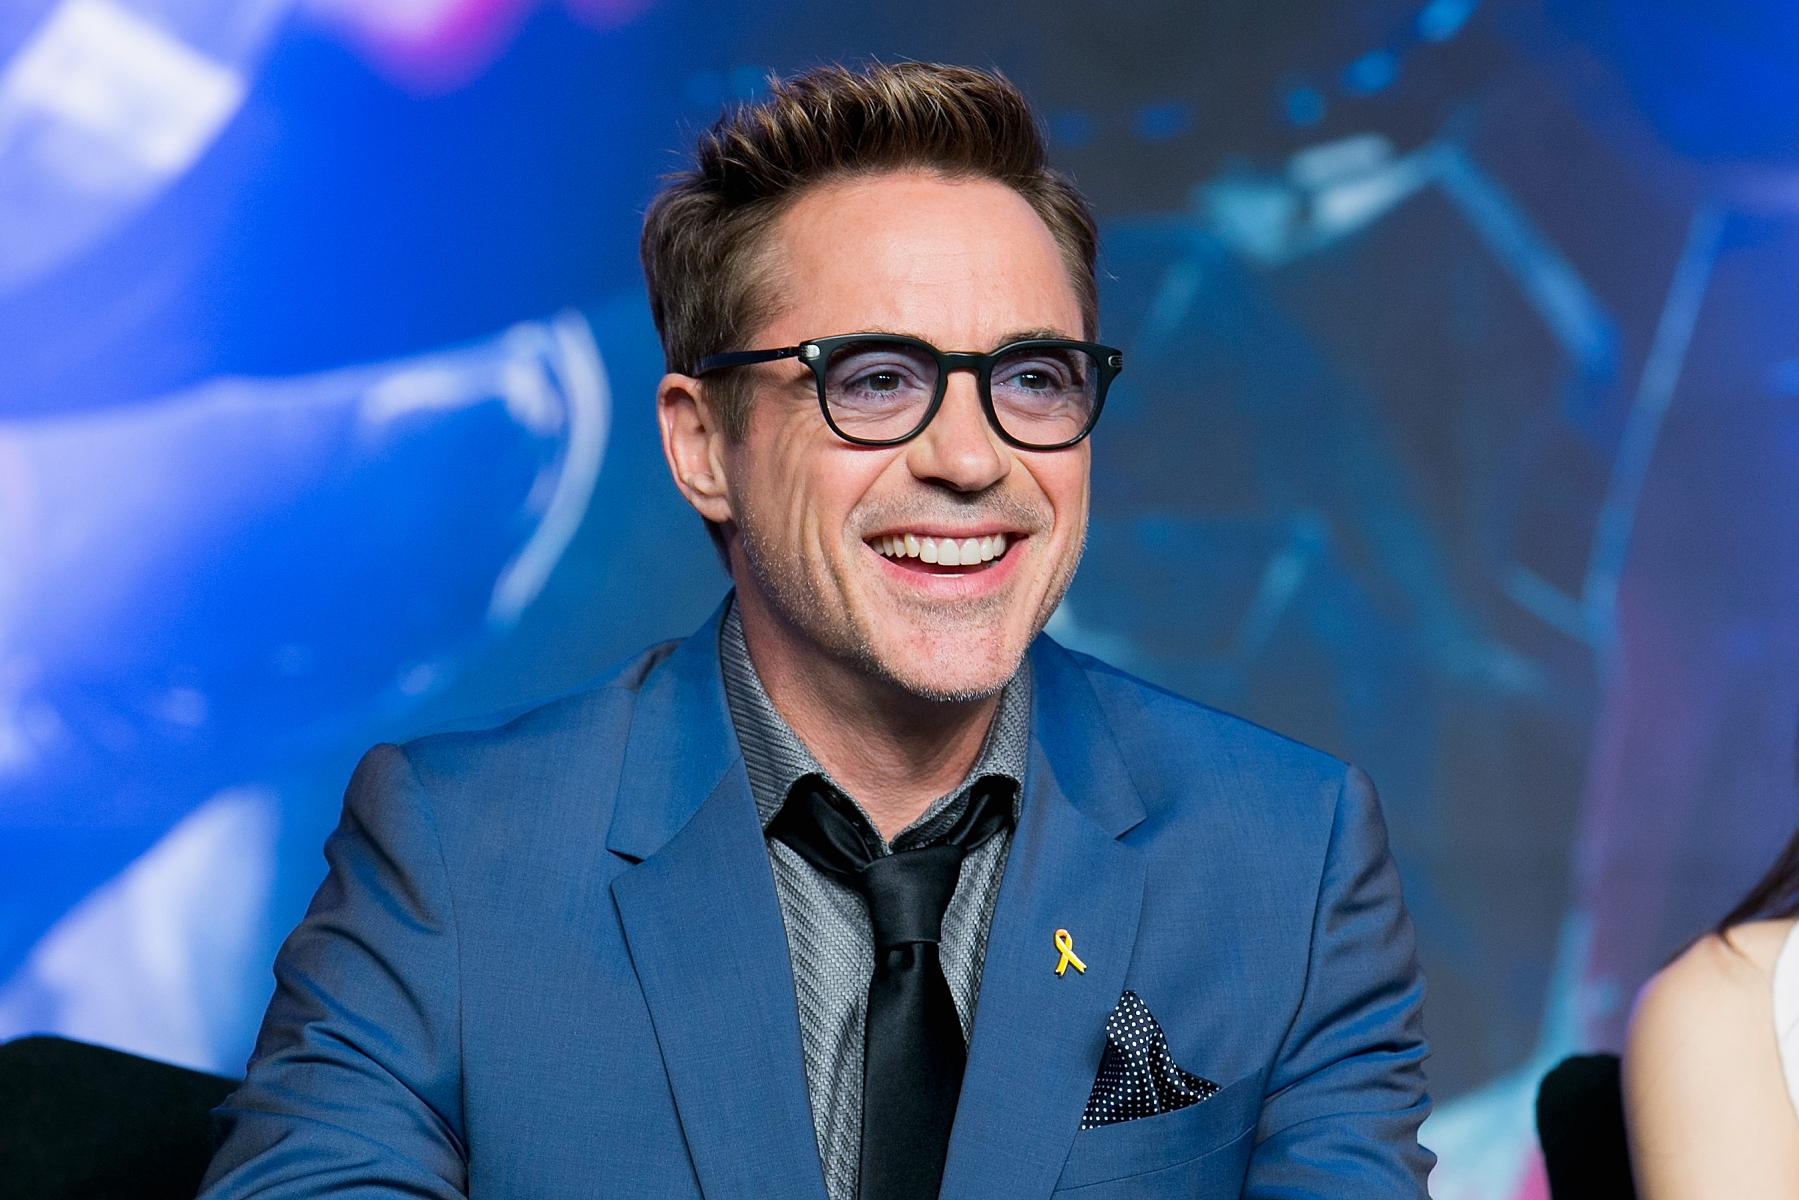 Robert Downey Jr. Net Worth: How Much is Robert Downey Jr. Worth Robert Downey